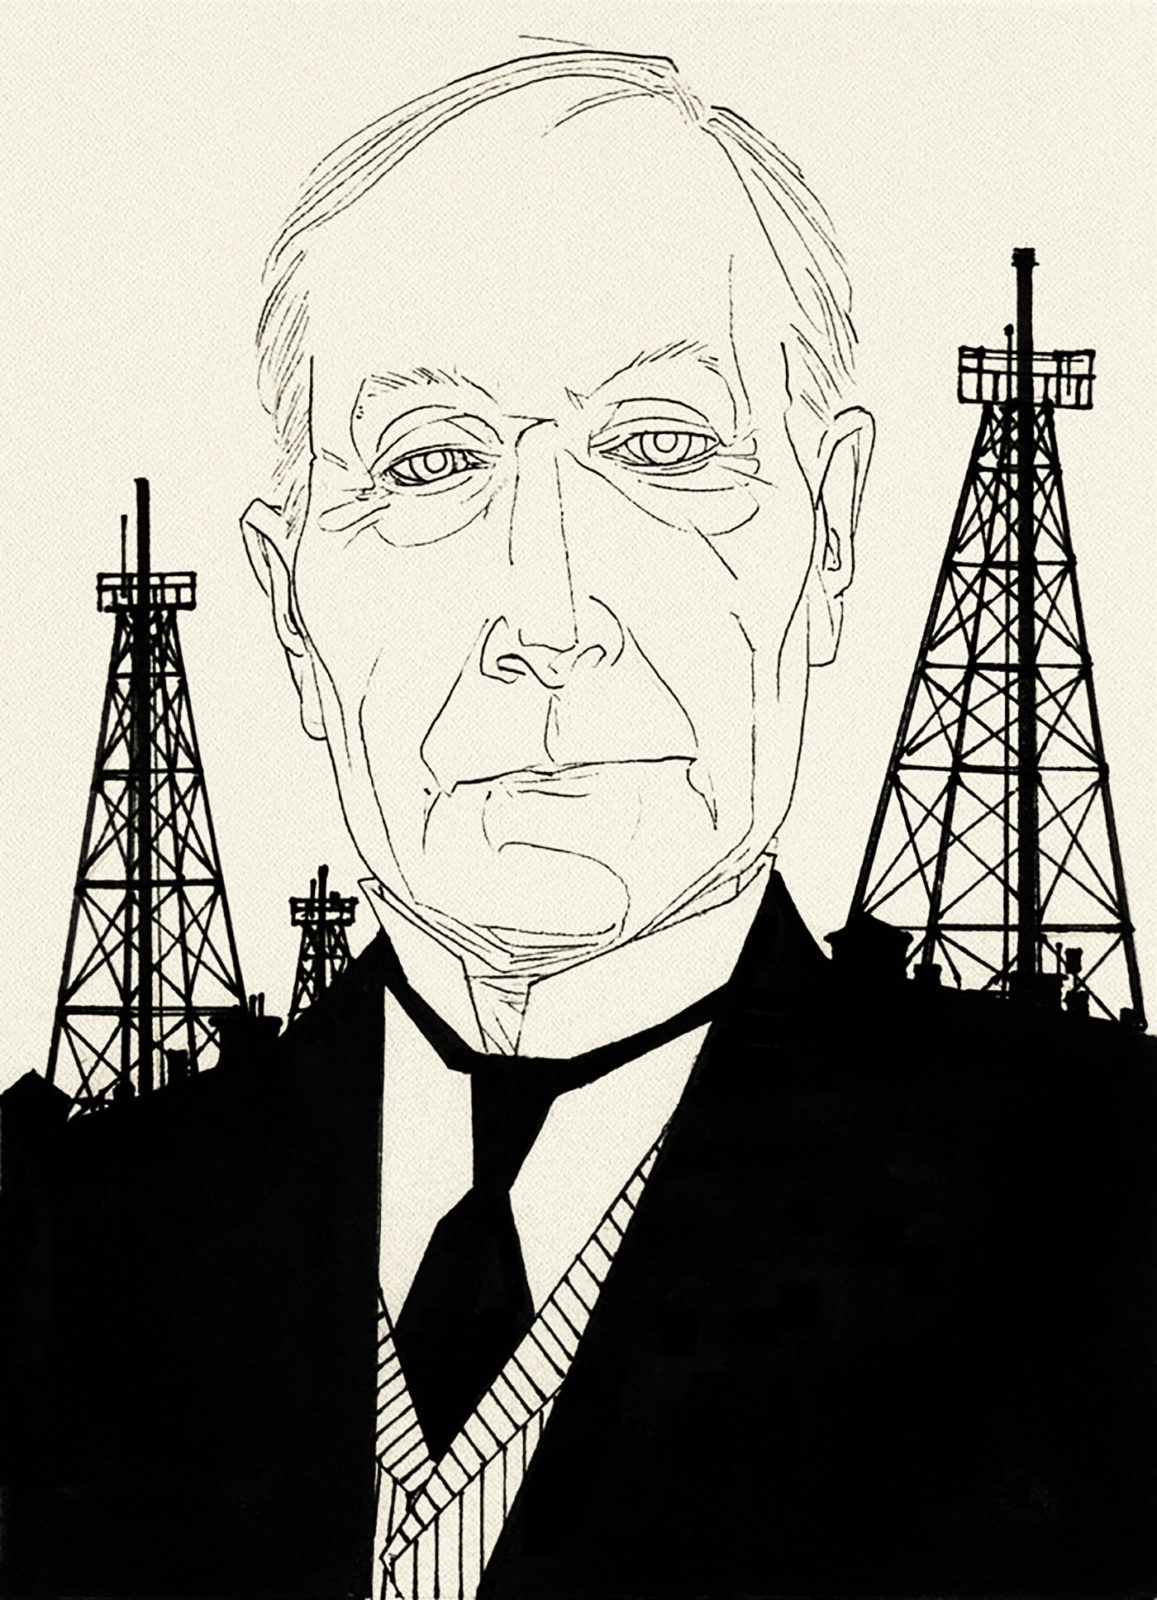 Richard Solomon - David-Johnson-099-oilman